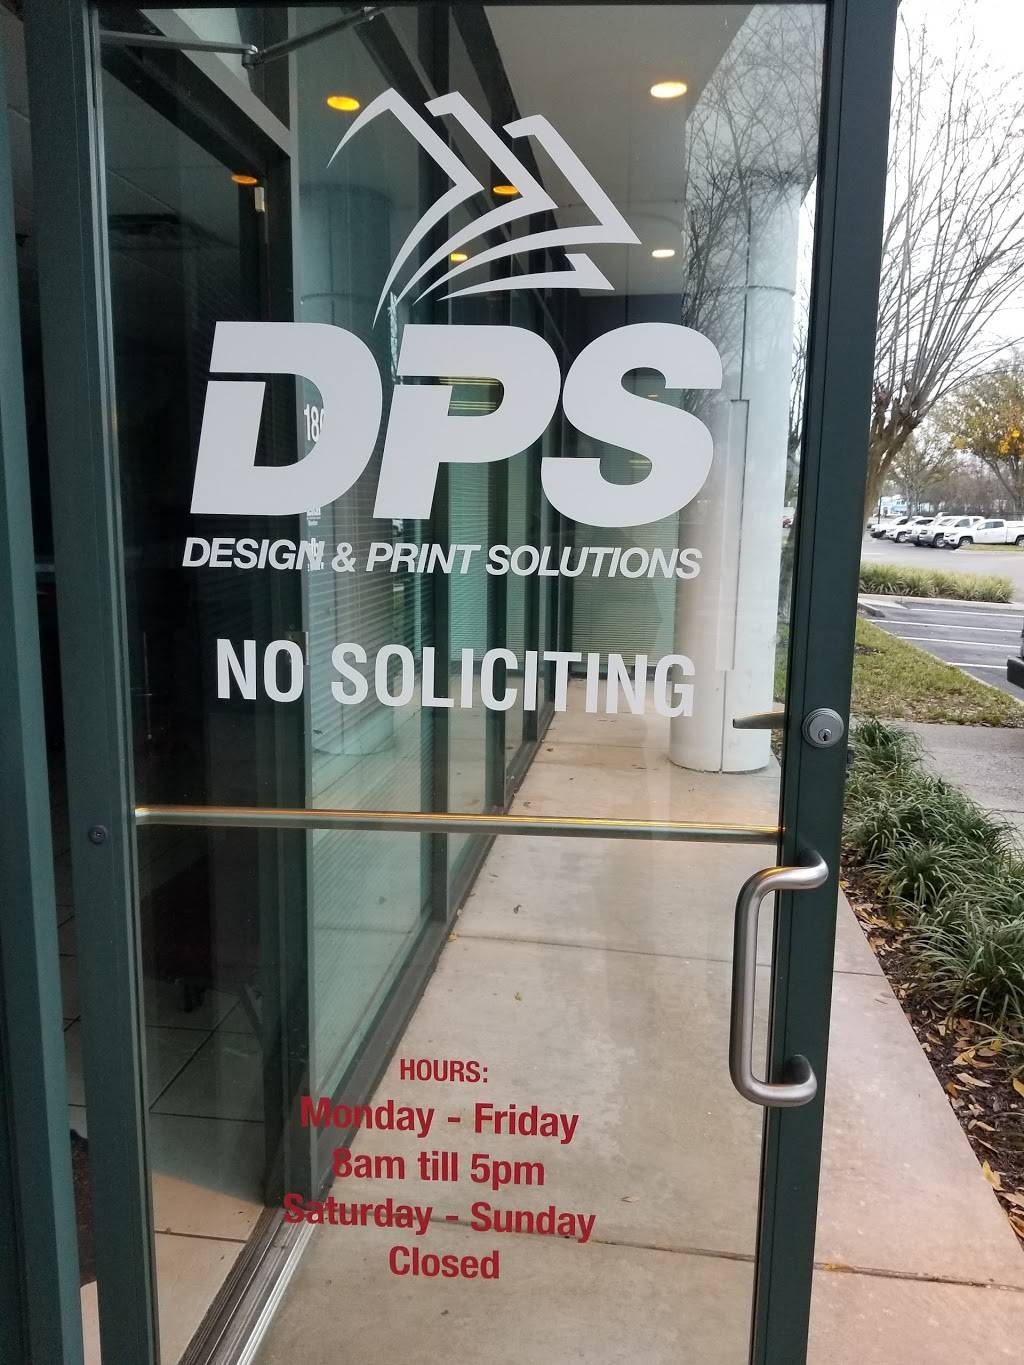 Design and Print Solutions - store    Photo 2 of 4   Address: 5730 Bowden Rd #107, Jacksonville, FL 32216, USA   Phone: (904) 551-6466